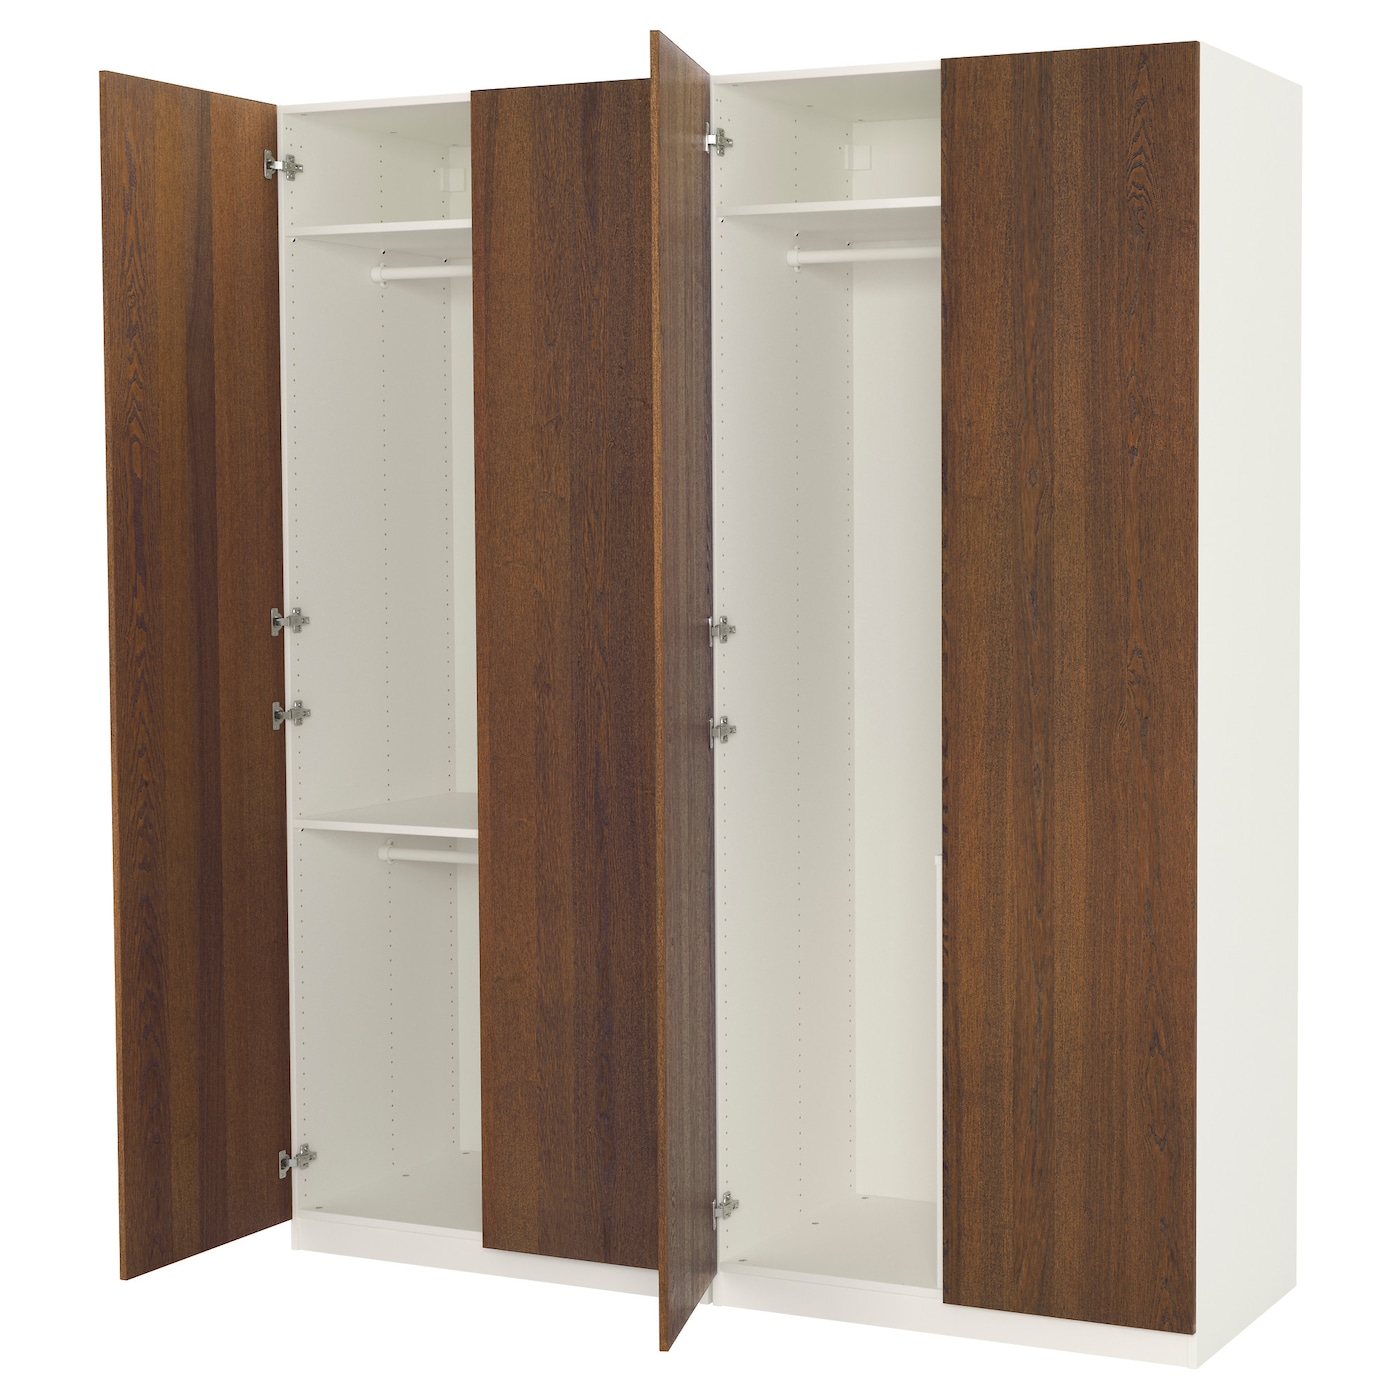 Pax wardrobe white nexus brown stained ash veneer 200 x 60 x 236 cm ikea - Ikea armoire d angle pax ...